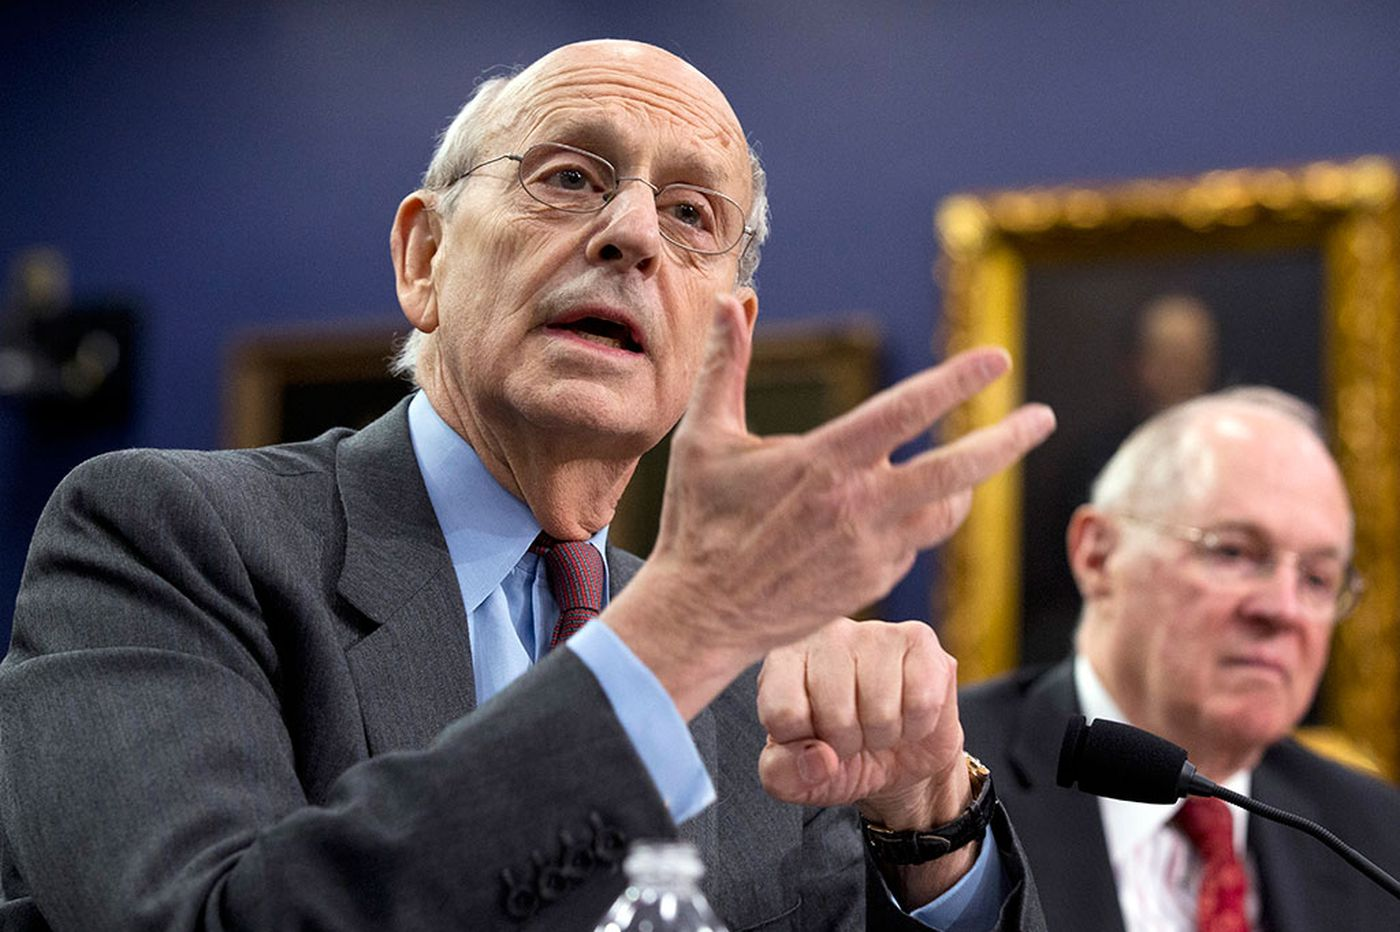 Justice Breyer, in new book, says U.S. courts must consider foreign laws